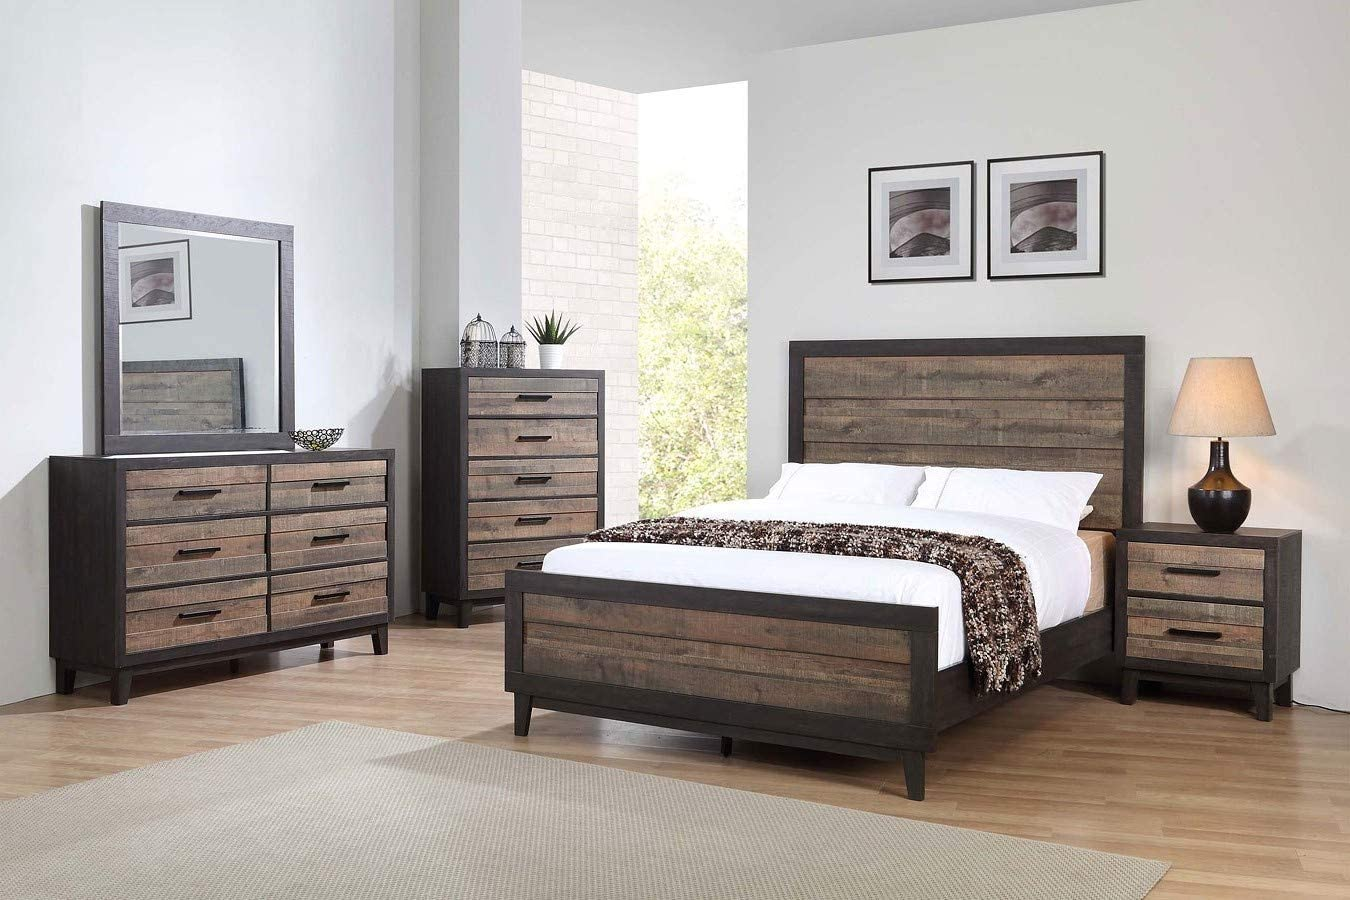 Esofastore Modern Style Queen SEAL limited product 4Pc Bed Set Nightst Mirror sold out Dresser